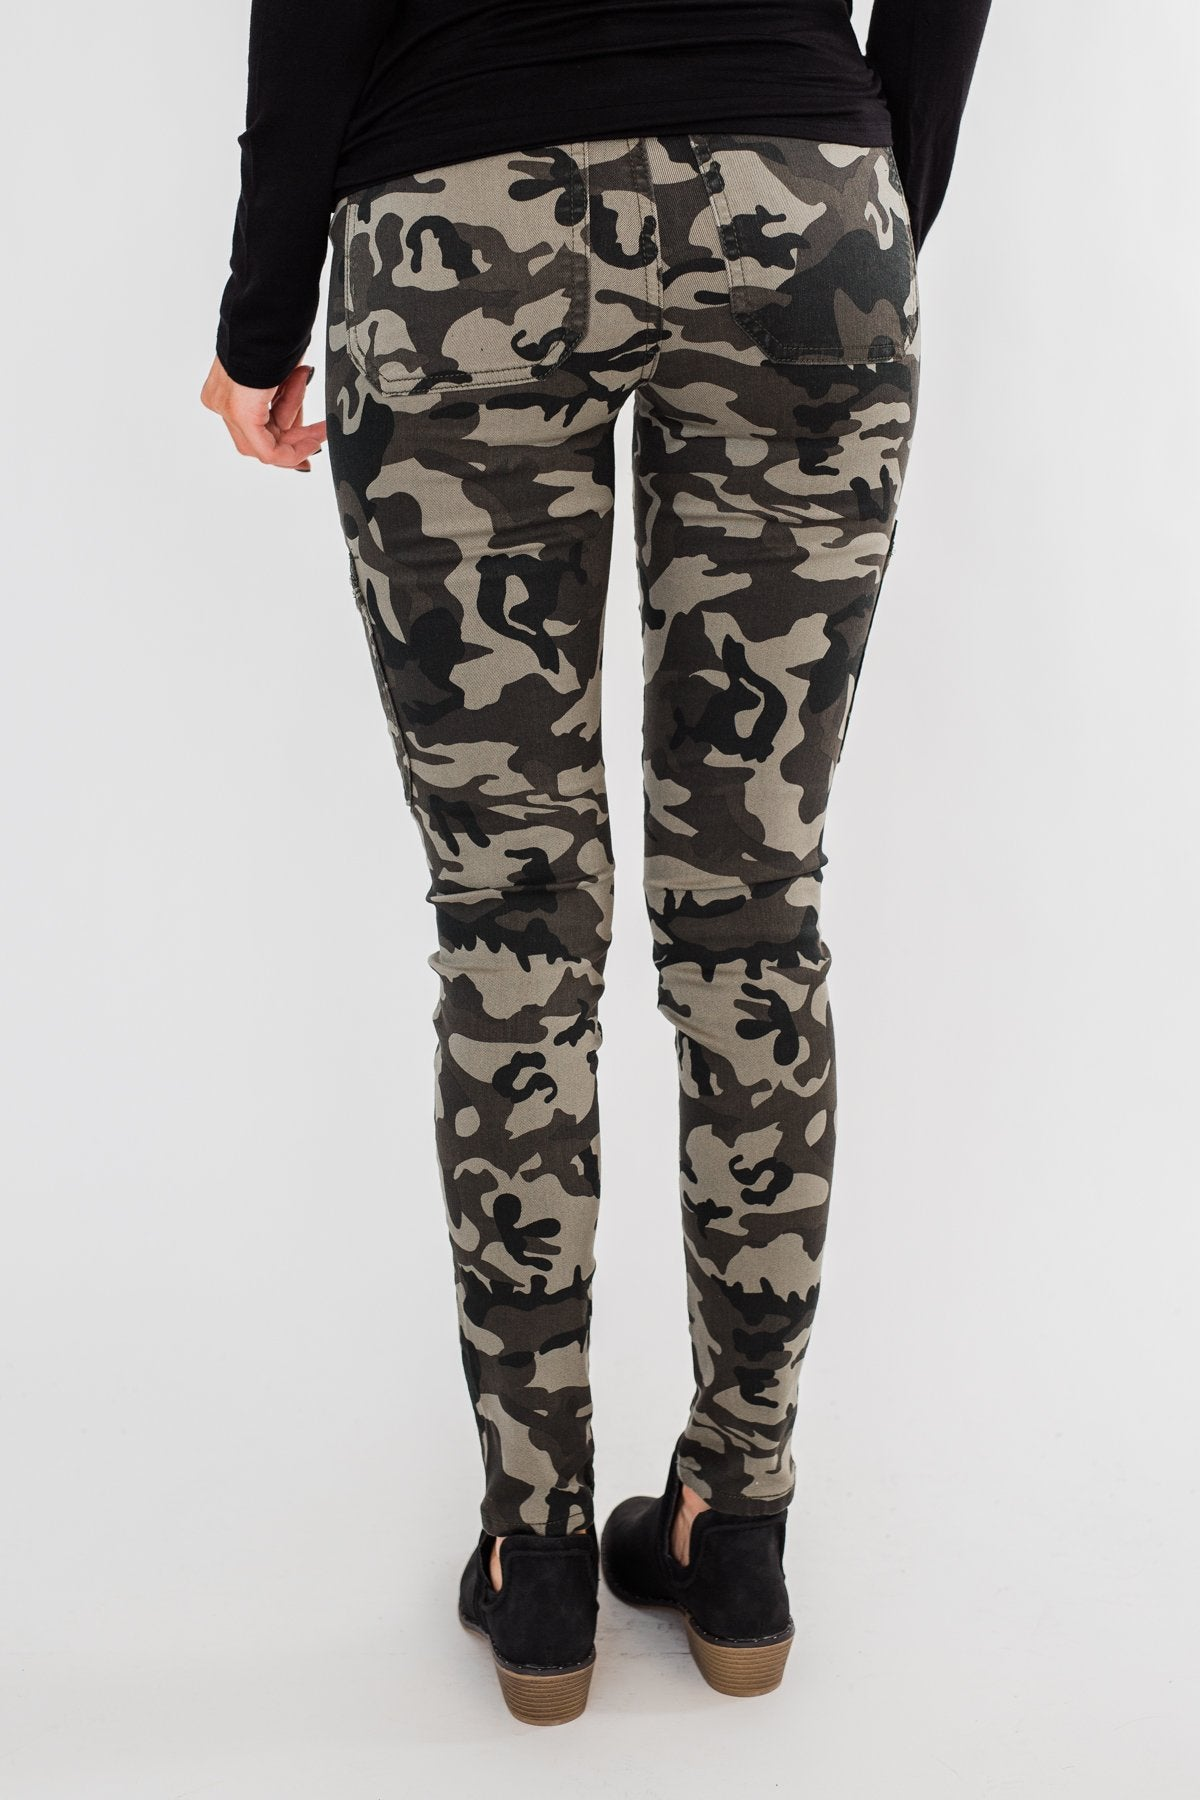 Kan Can- Camo Zipper Skinny Jeans